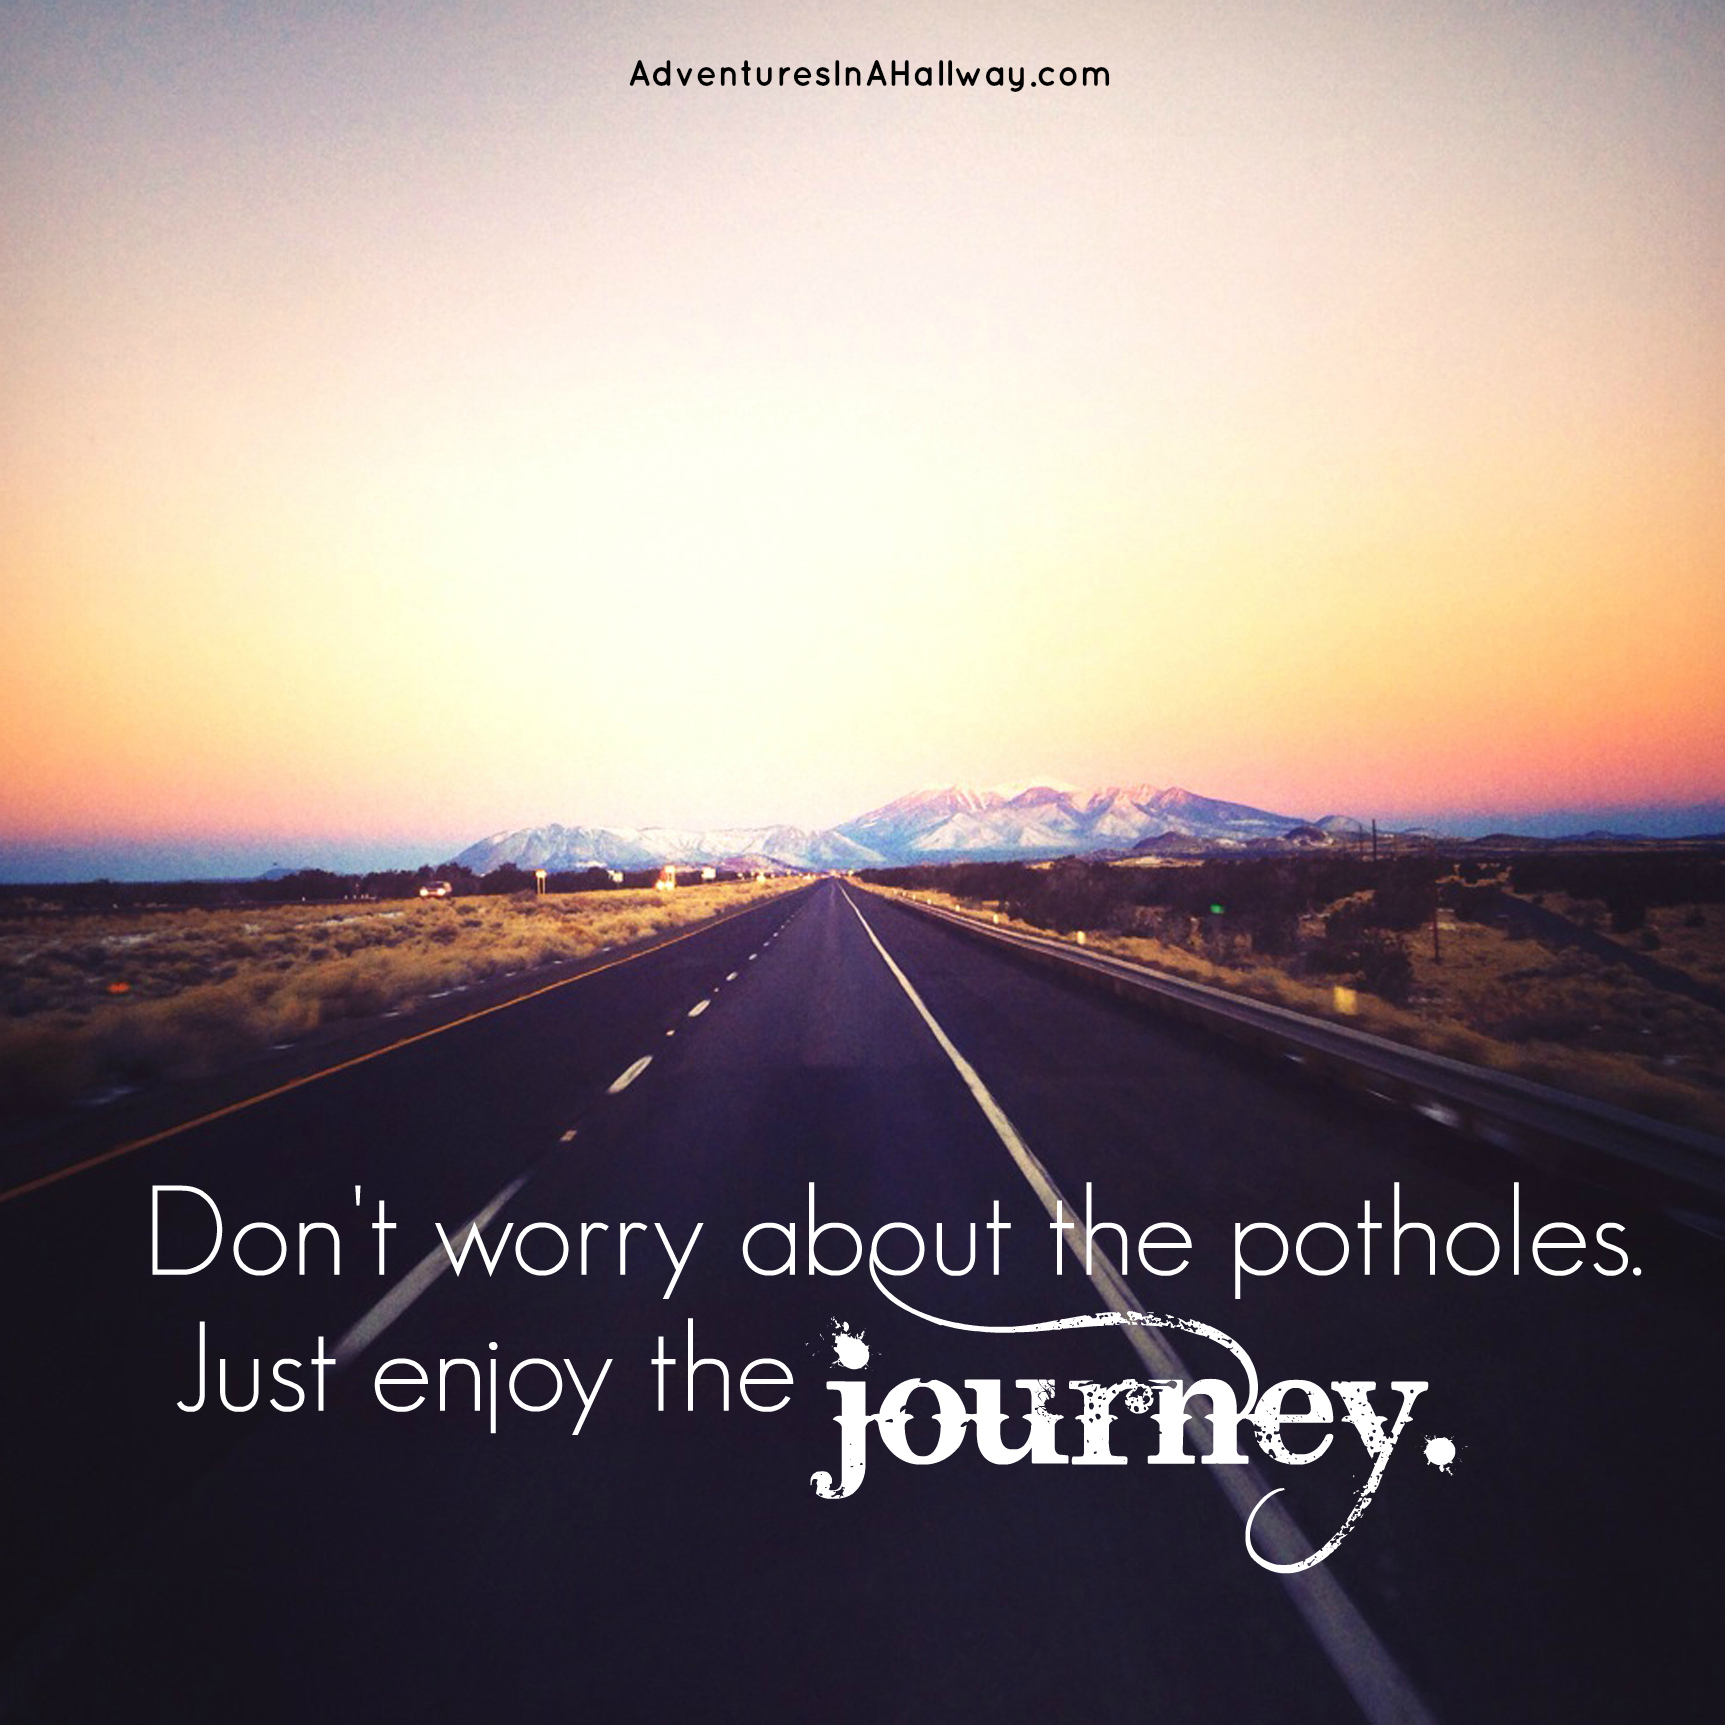 1000 Images About Cancer Journey On Pinterest: 1000+ Images About Enjoy The Journey! On Pinterest